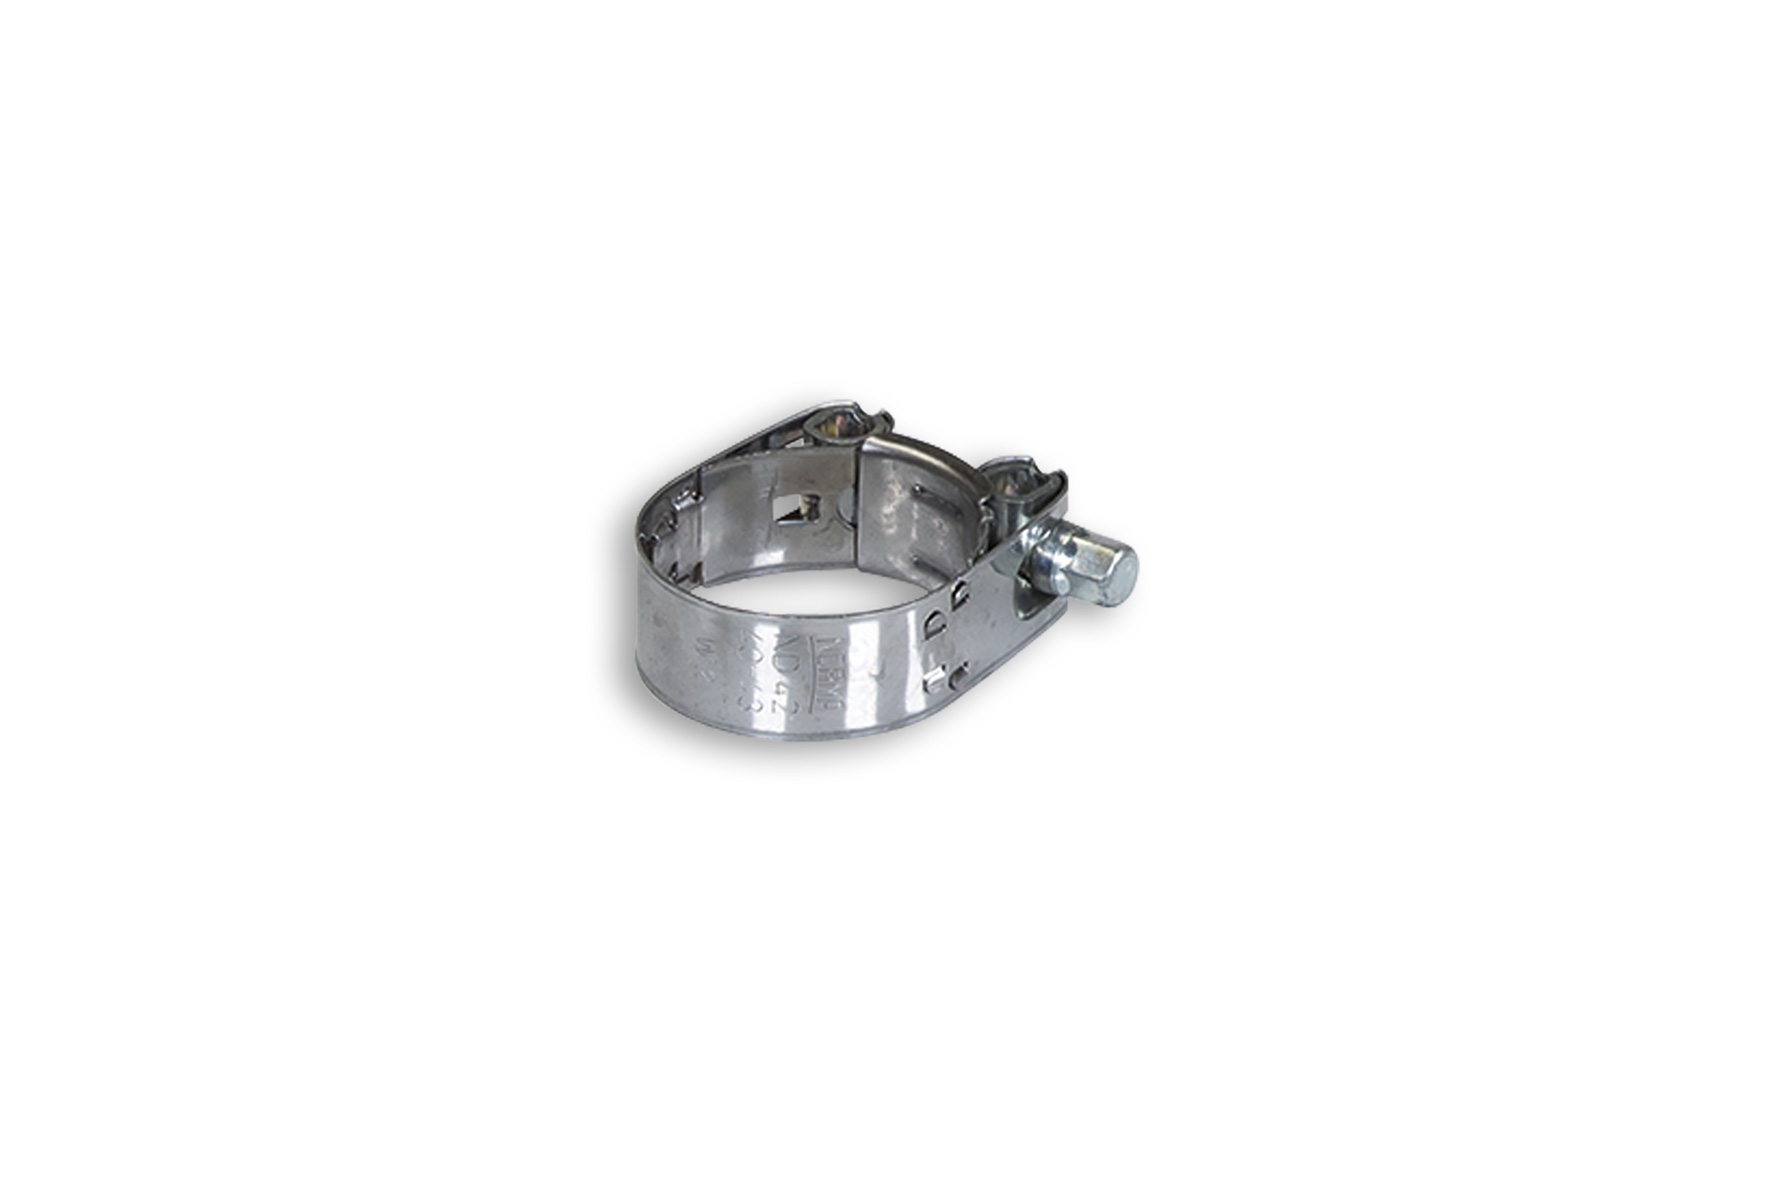 CLAMP for EXHAUST S. RX